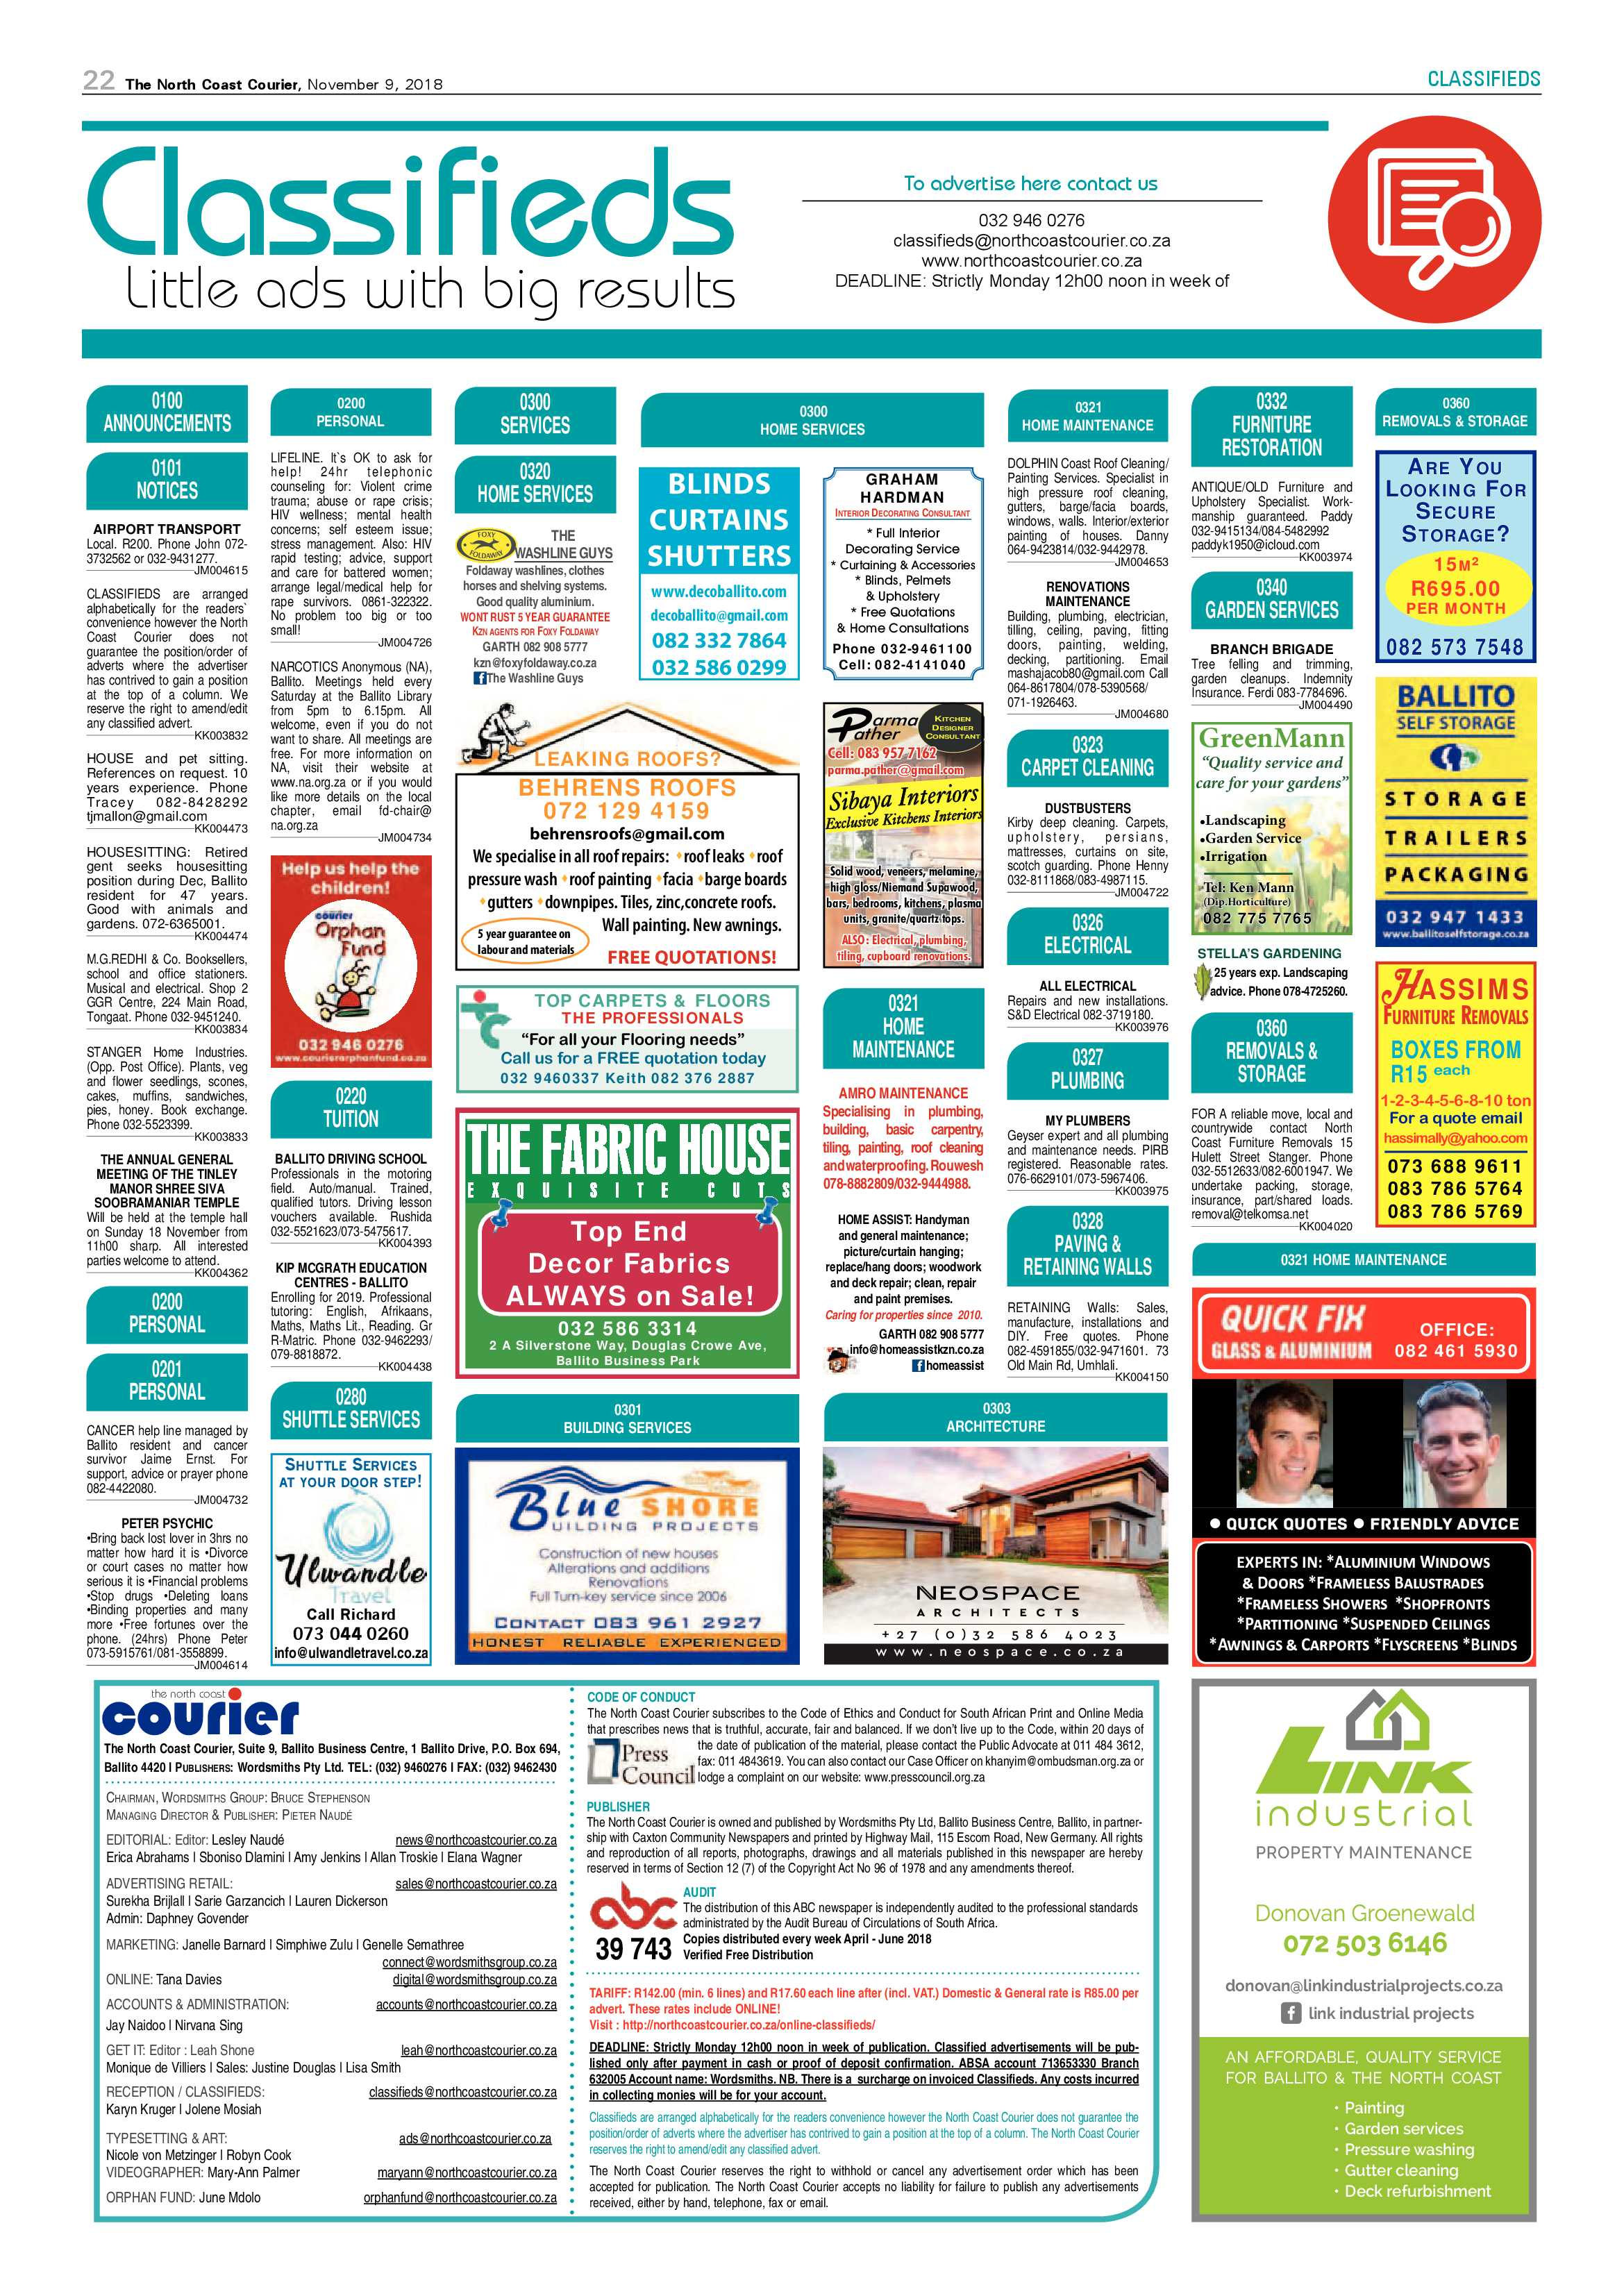 north-coast-courier-09-november-2018-epapers-page-22